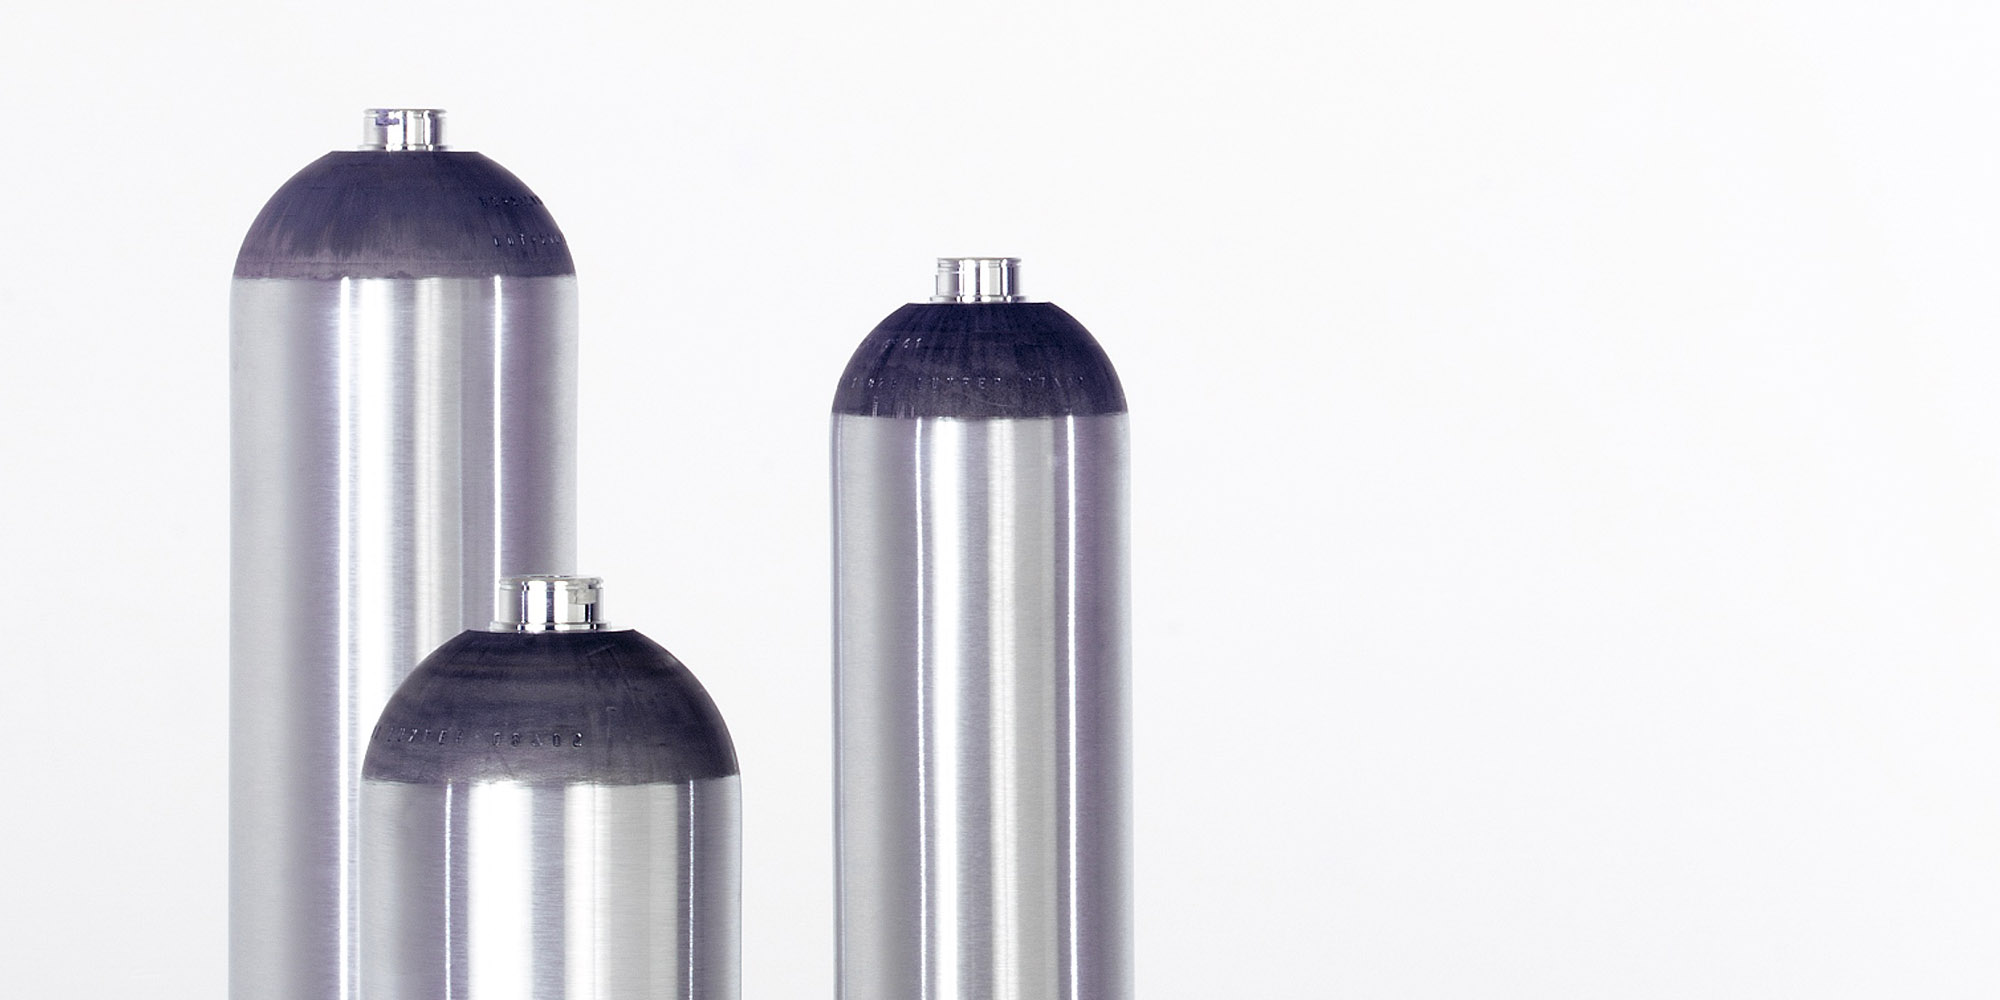 L6X® aluminum specialty gas cylinders